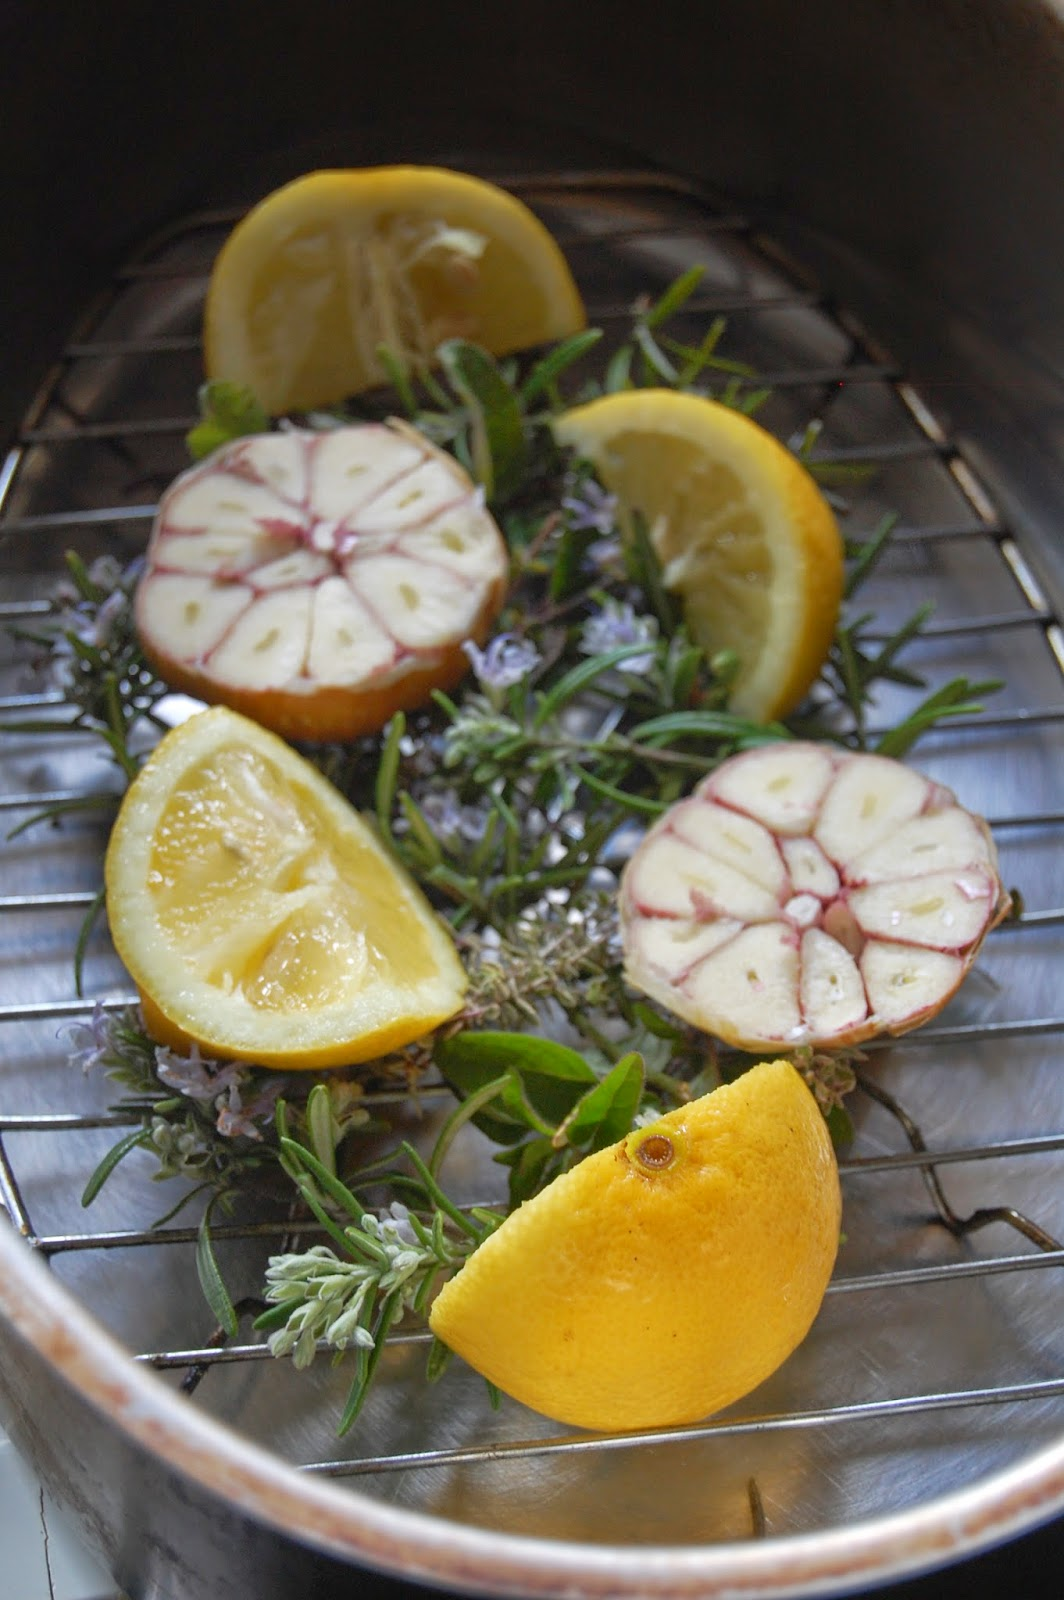 Place lemons, garlic and herbs in roasting tin